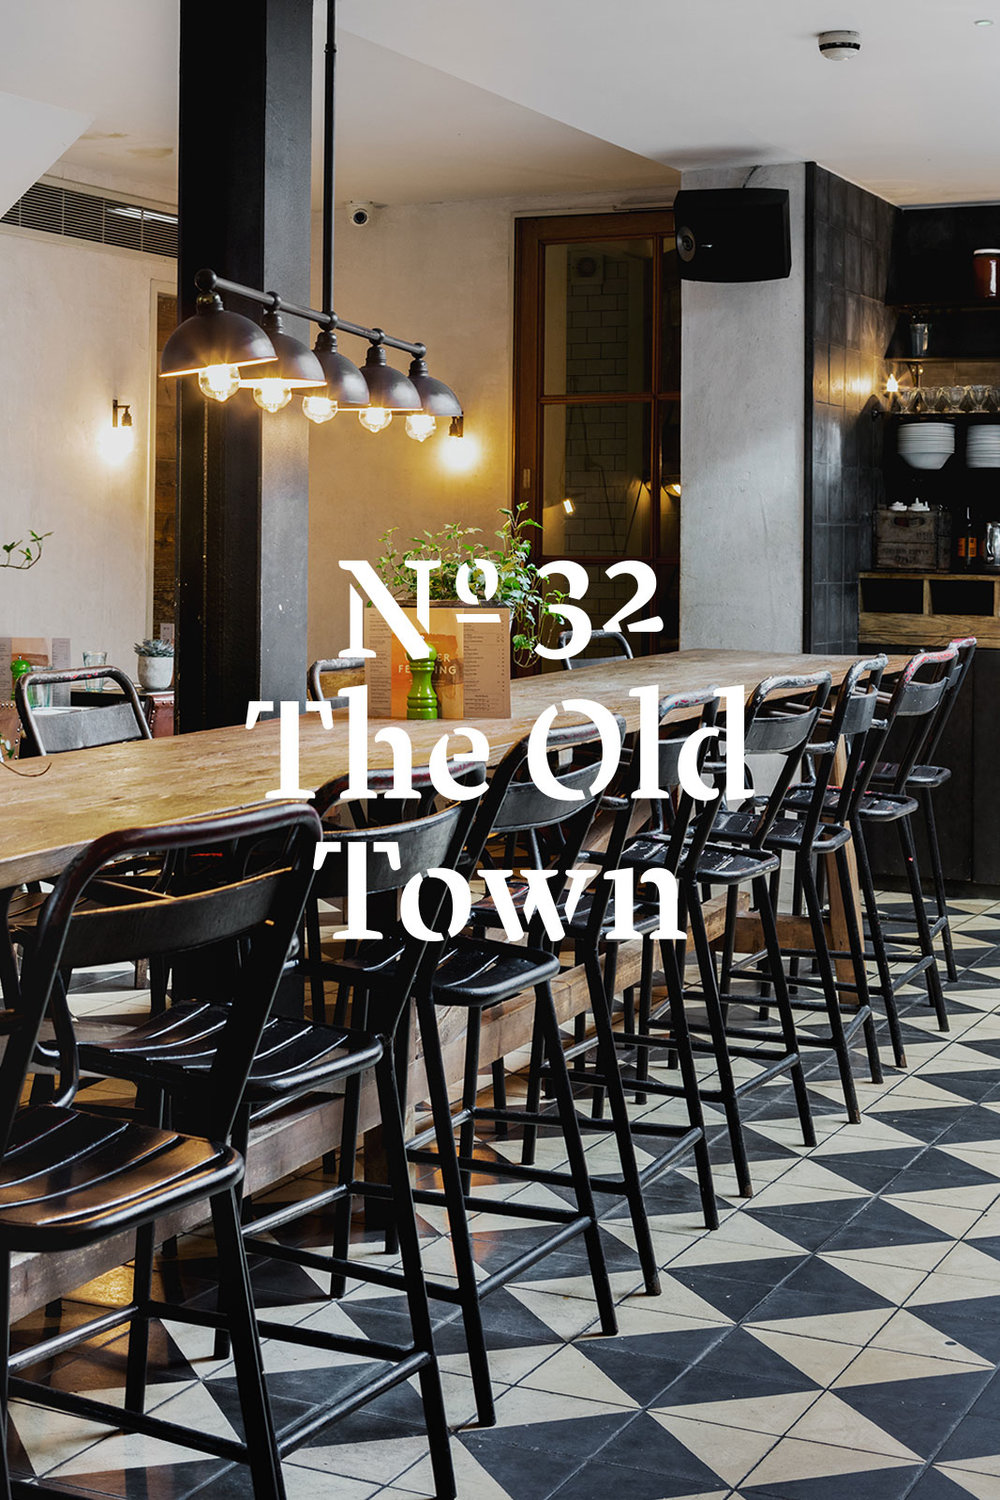 DW_No32_theoldtown_01_logo.jpg